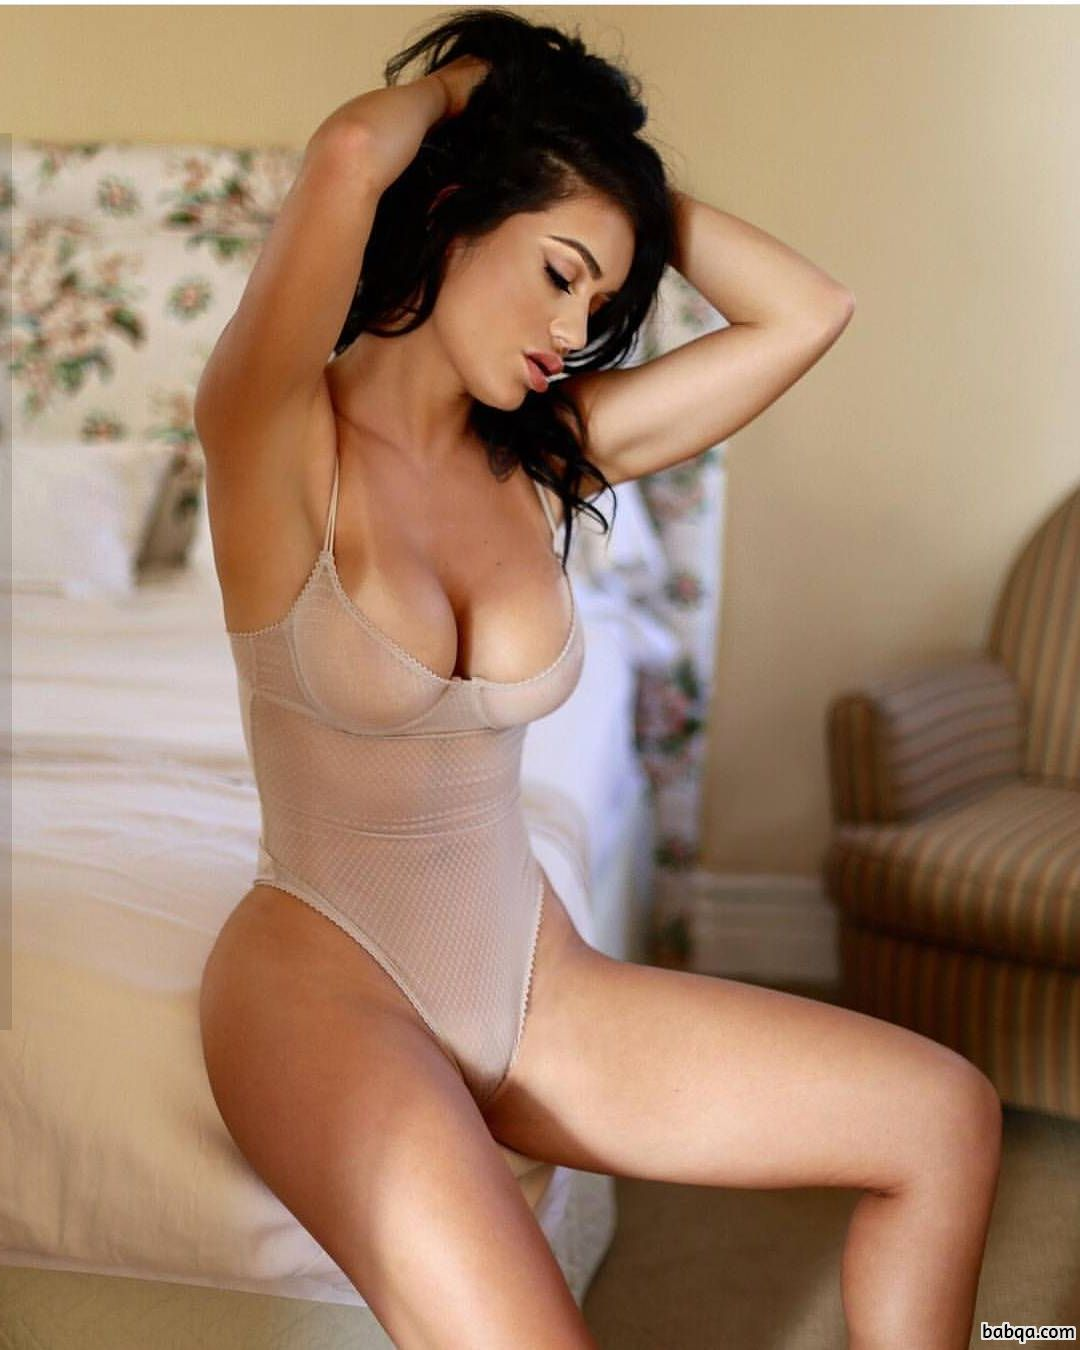 sexy girls fails repost from gtmodel – real sexy girl